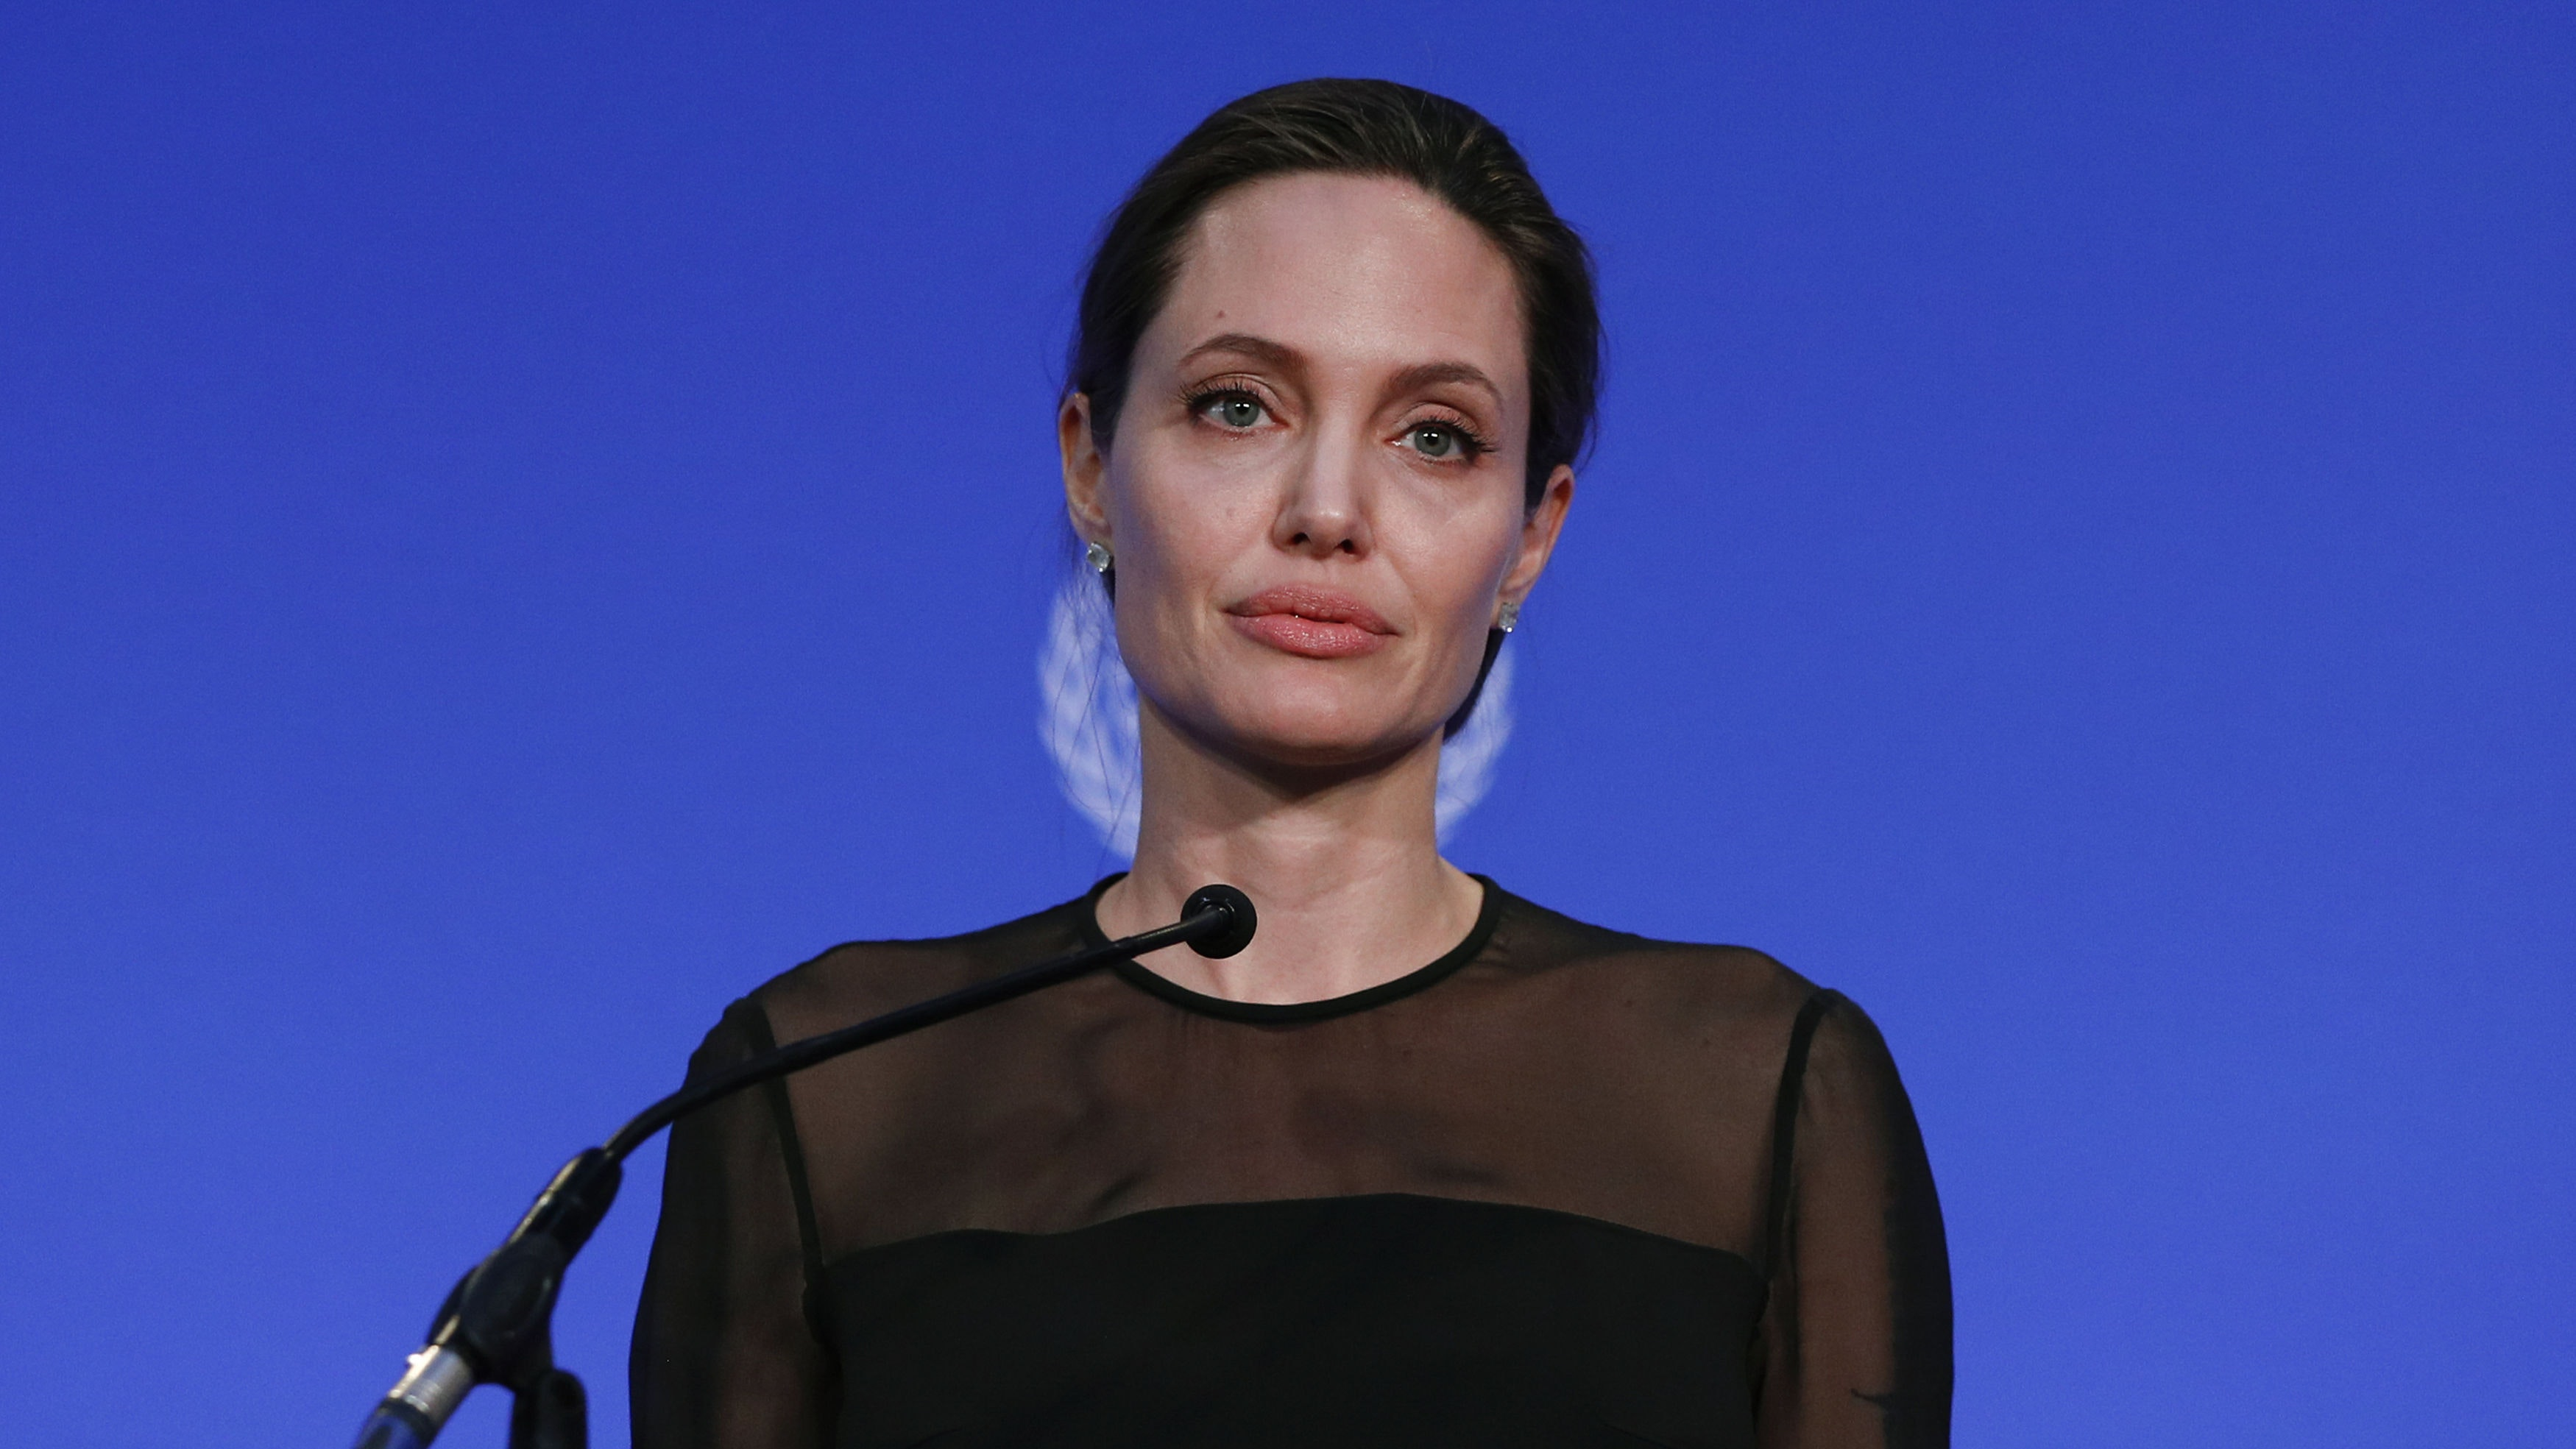 Angelina Jolie News: Microsoft Joins BBC And Angelina Jolie To Educate 'future